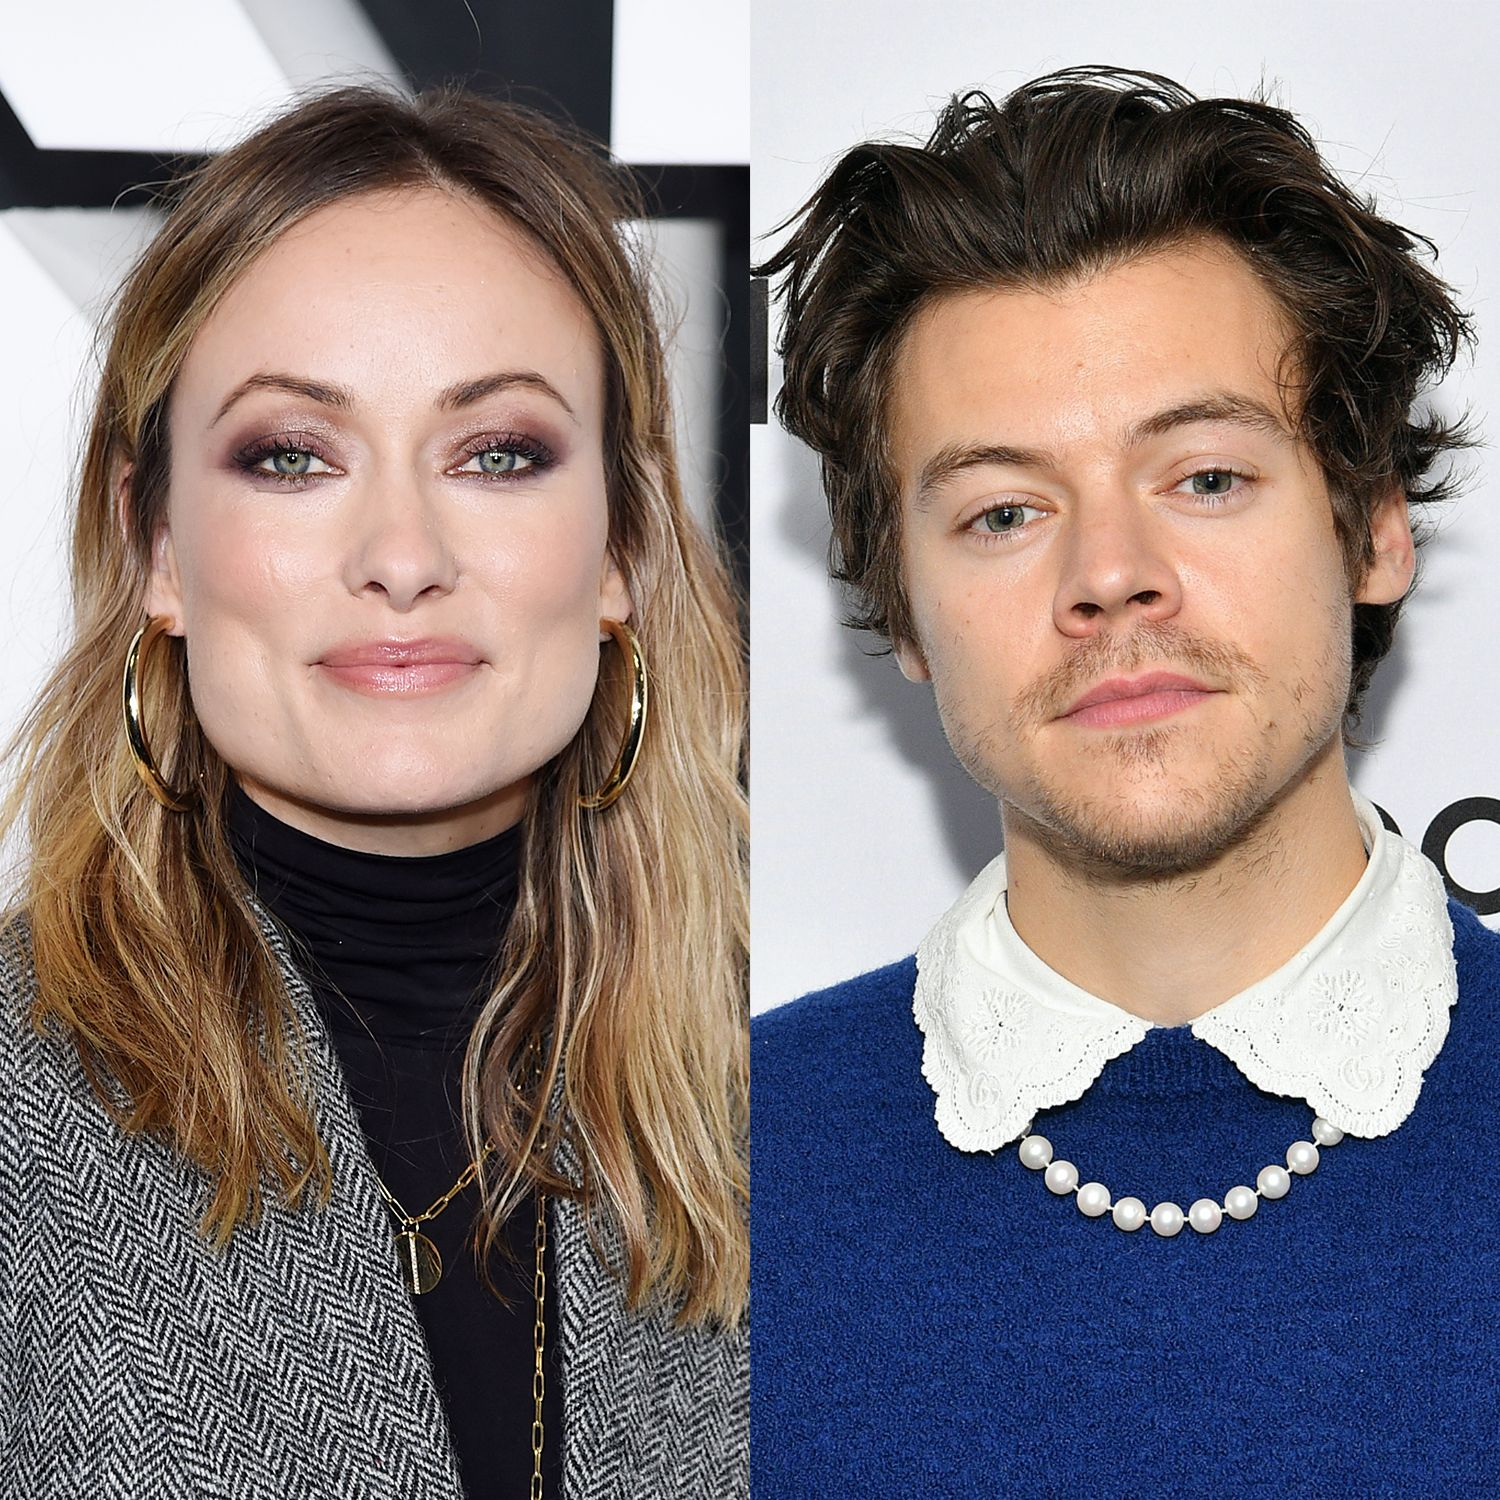 olivia-wilde-supports-harry-styles-at-his-las-vegas-concert